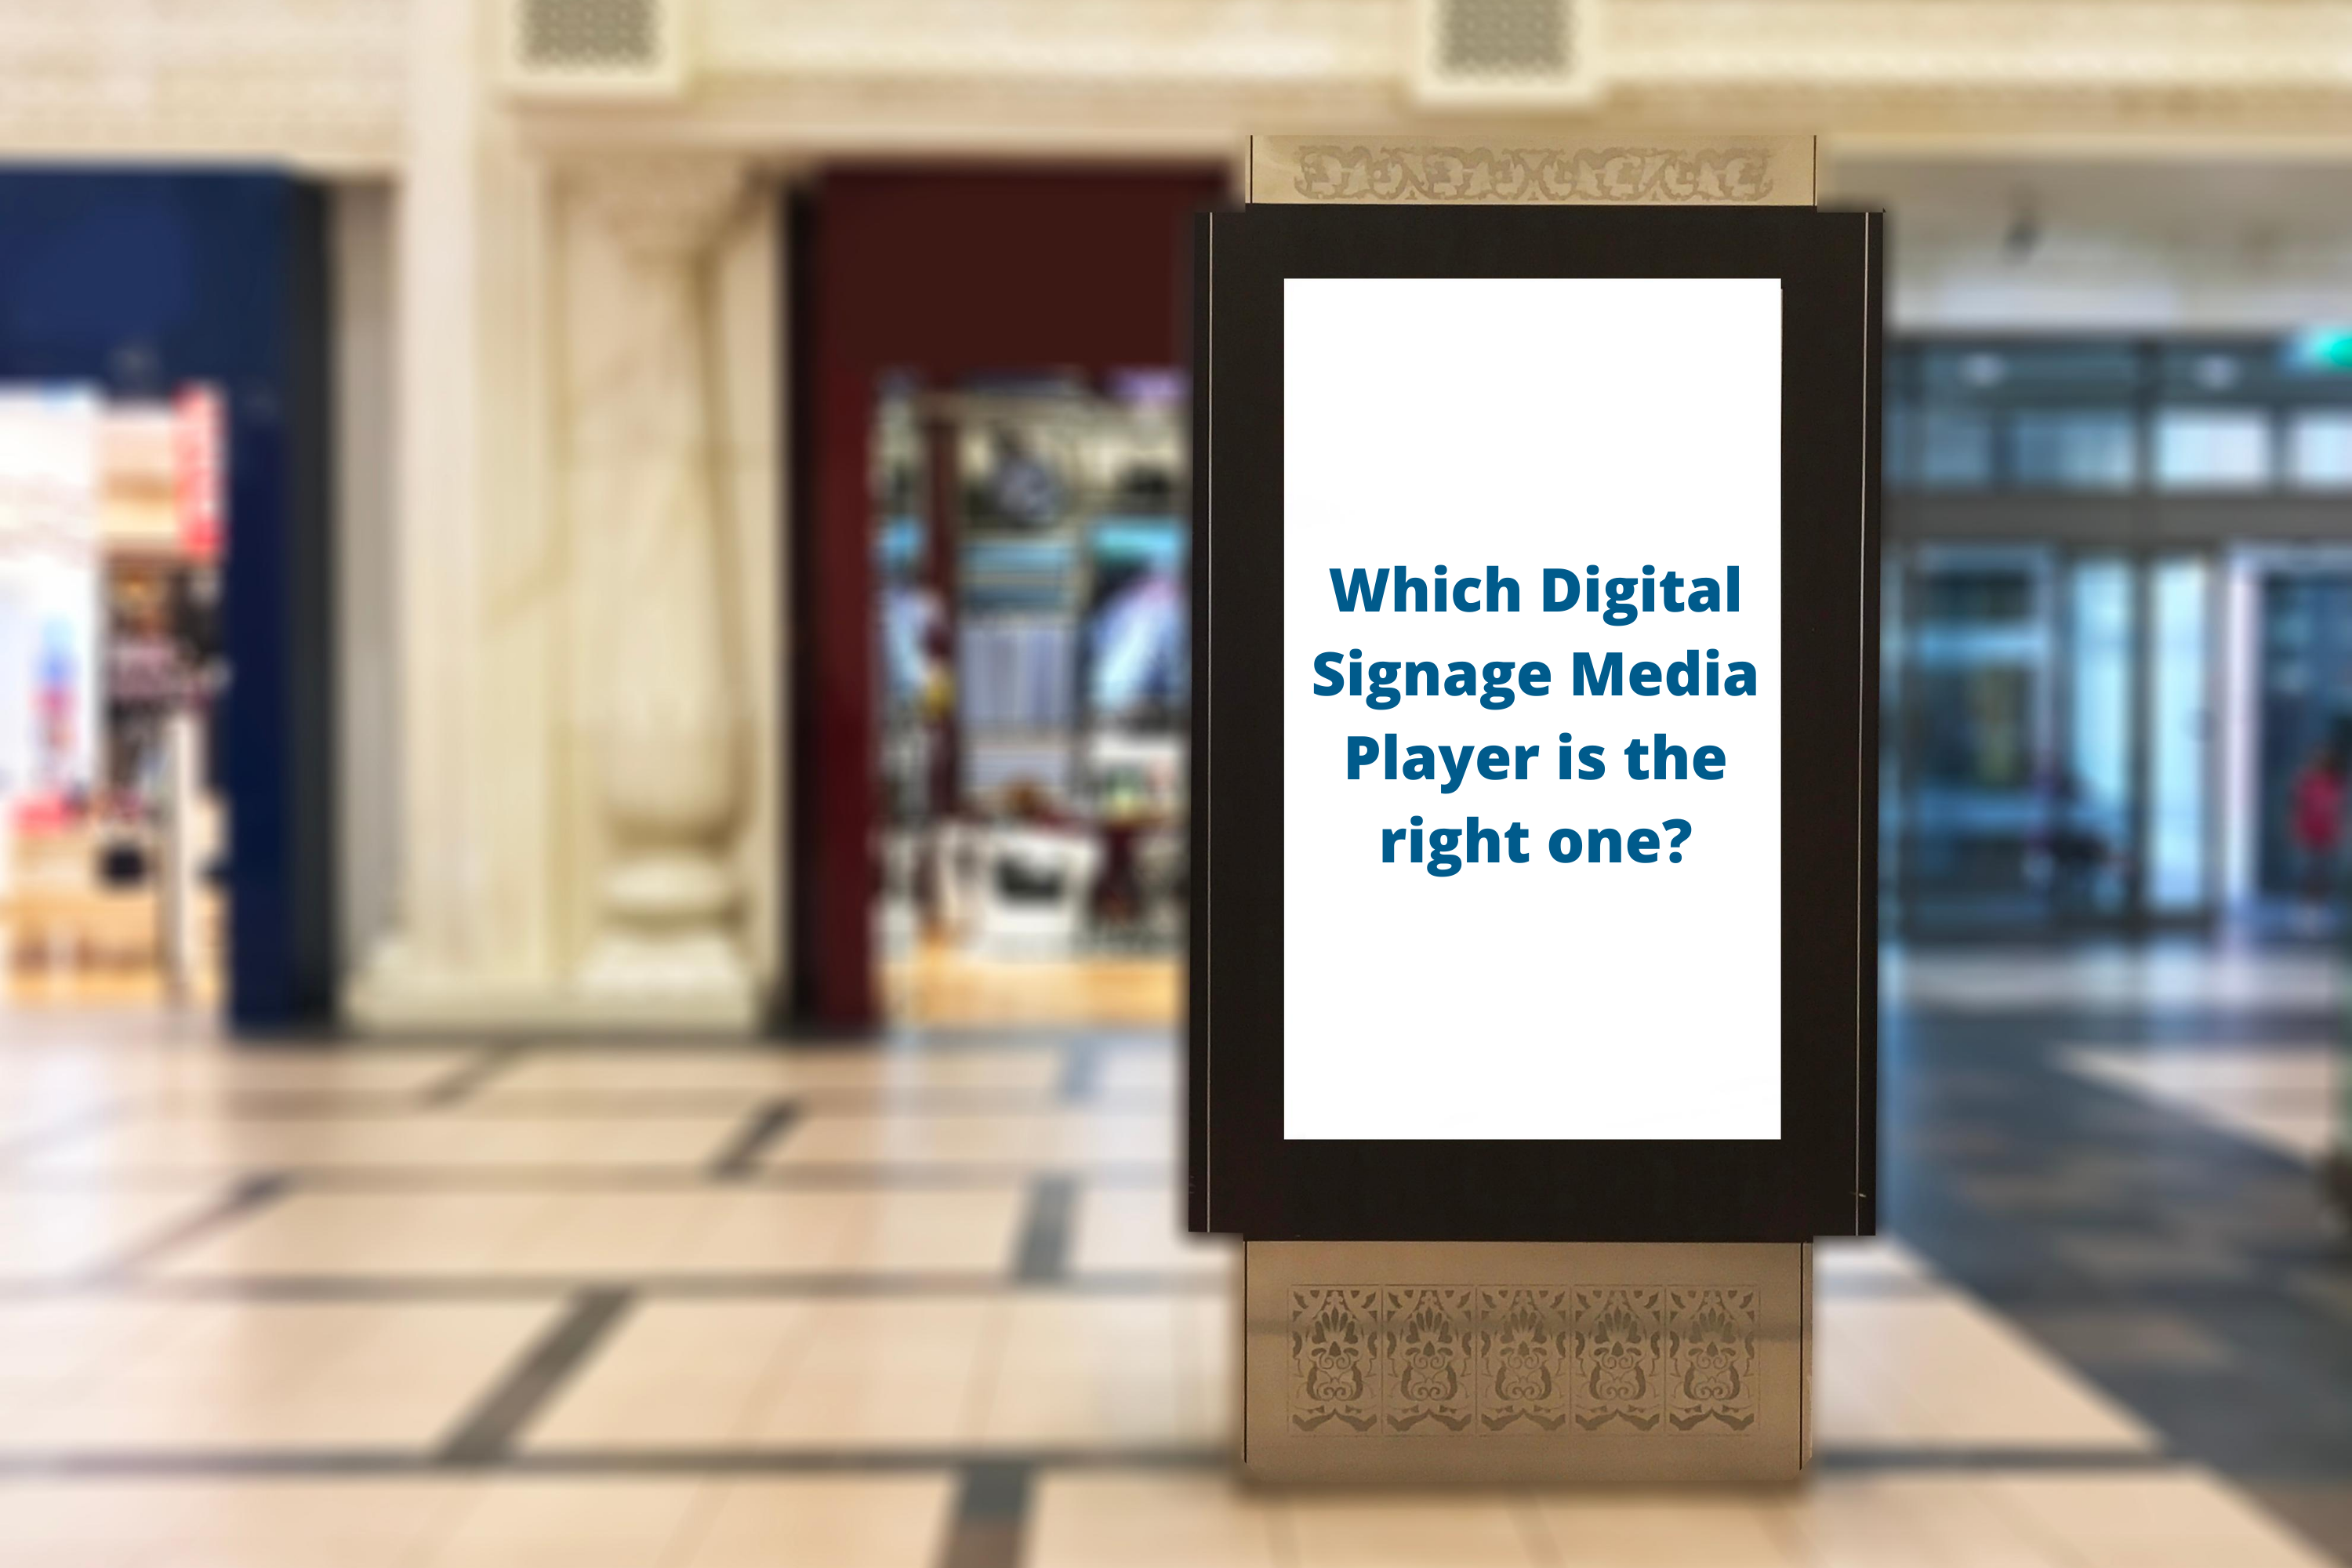 Which Digital Signage Media Player is the right one?